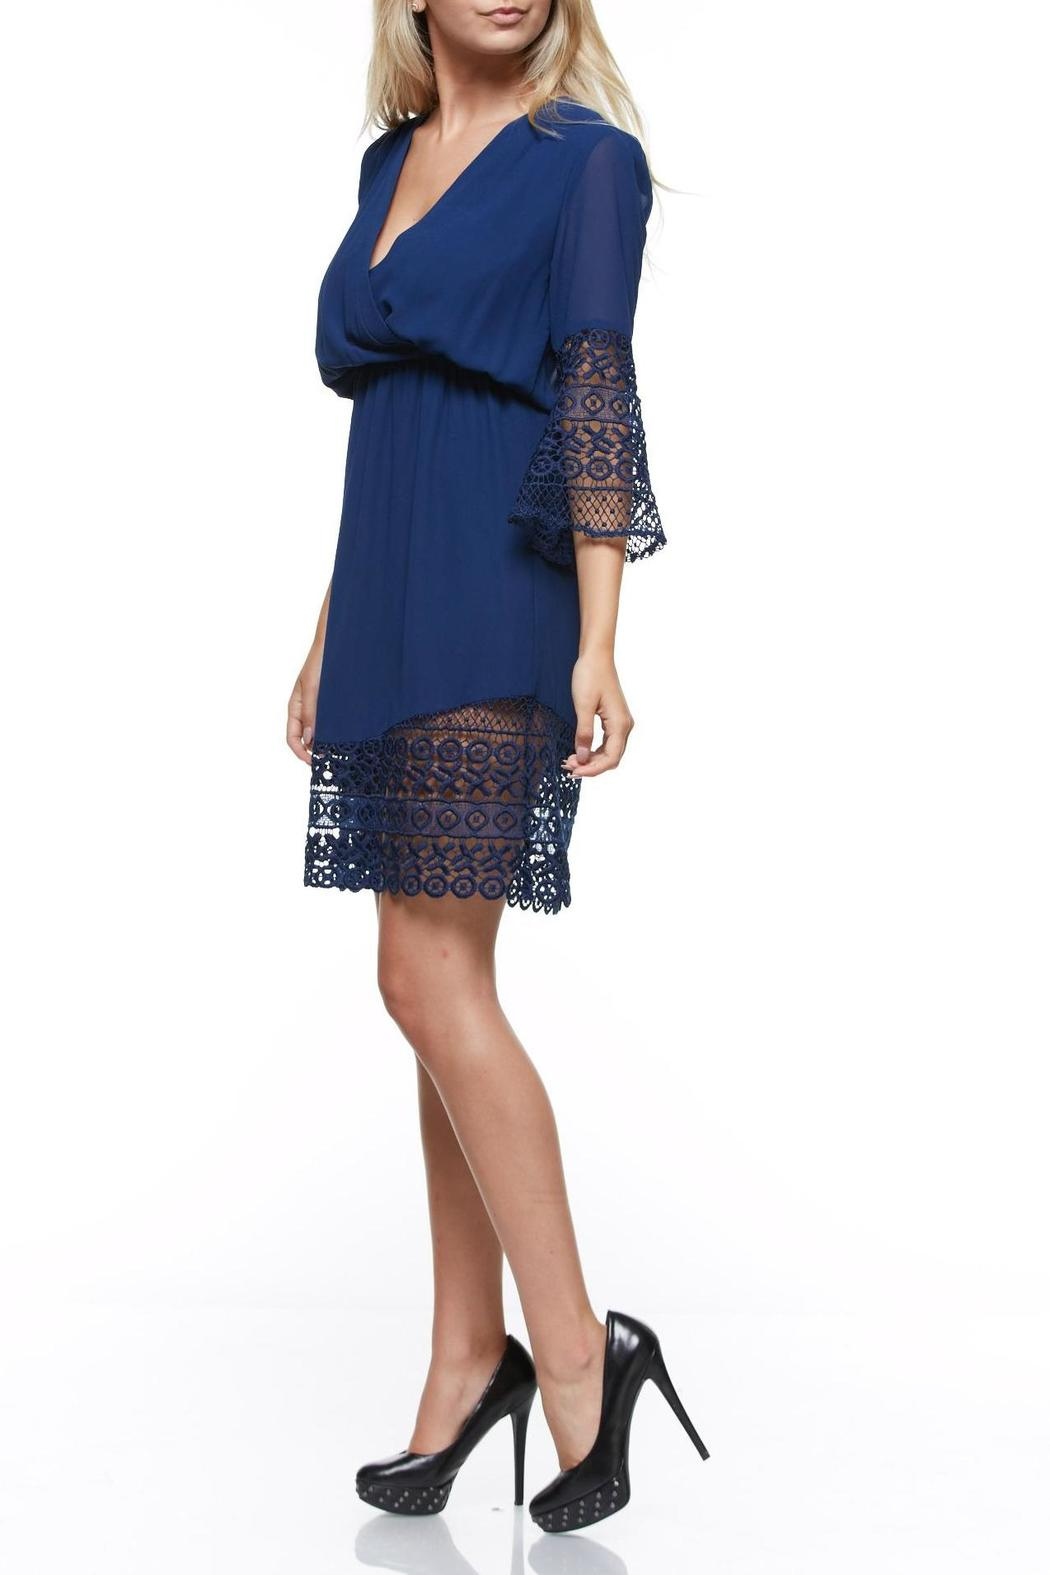 The Clothing Co Short Blue Dress - Side Cropped Image